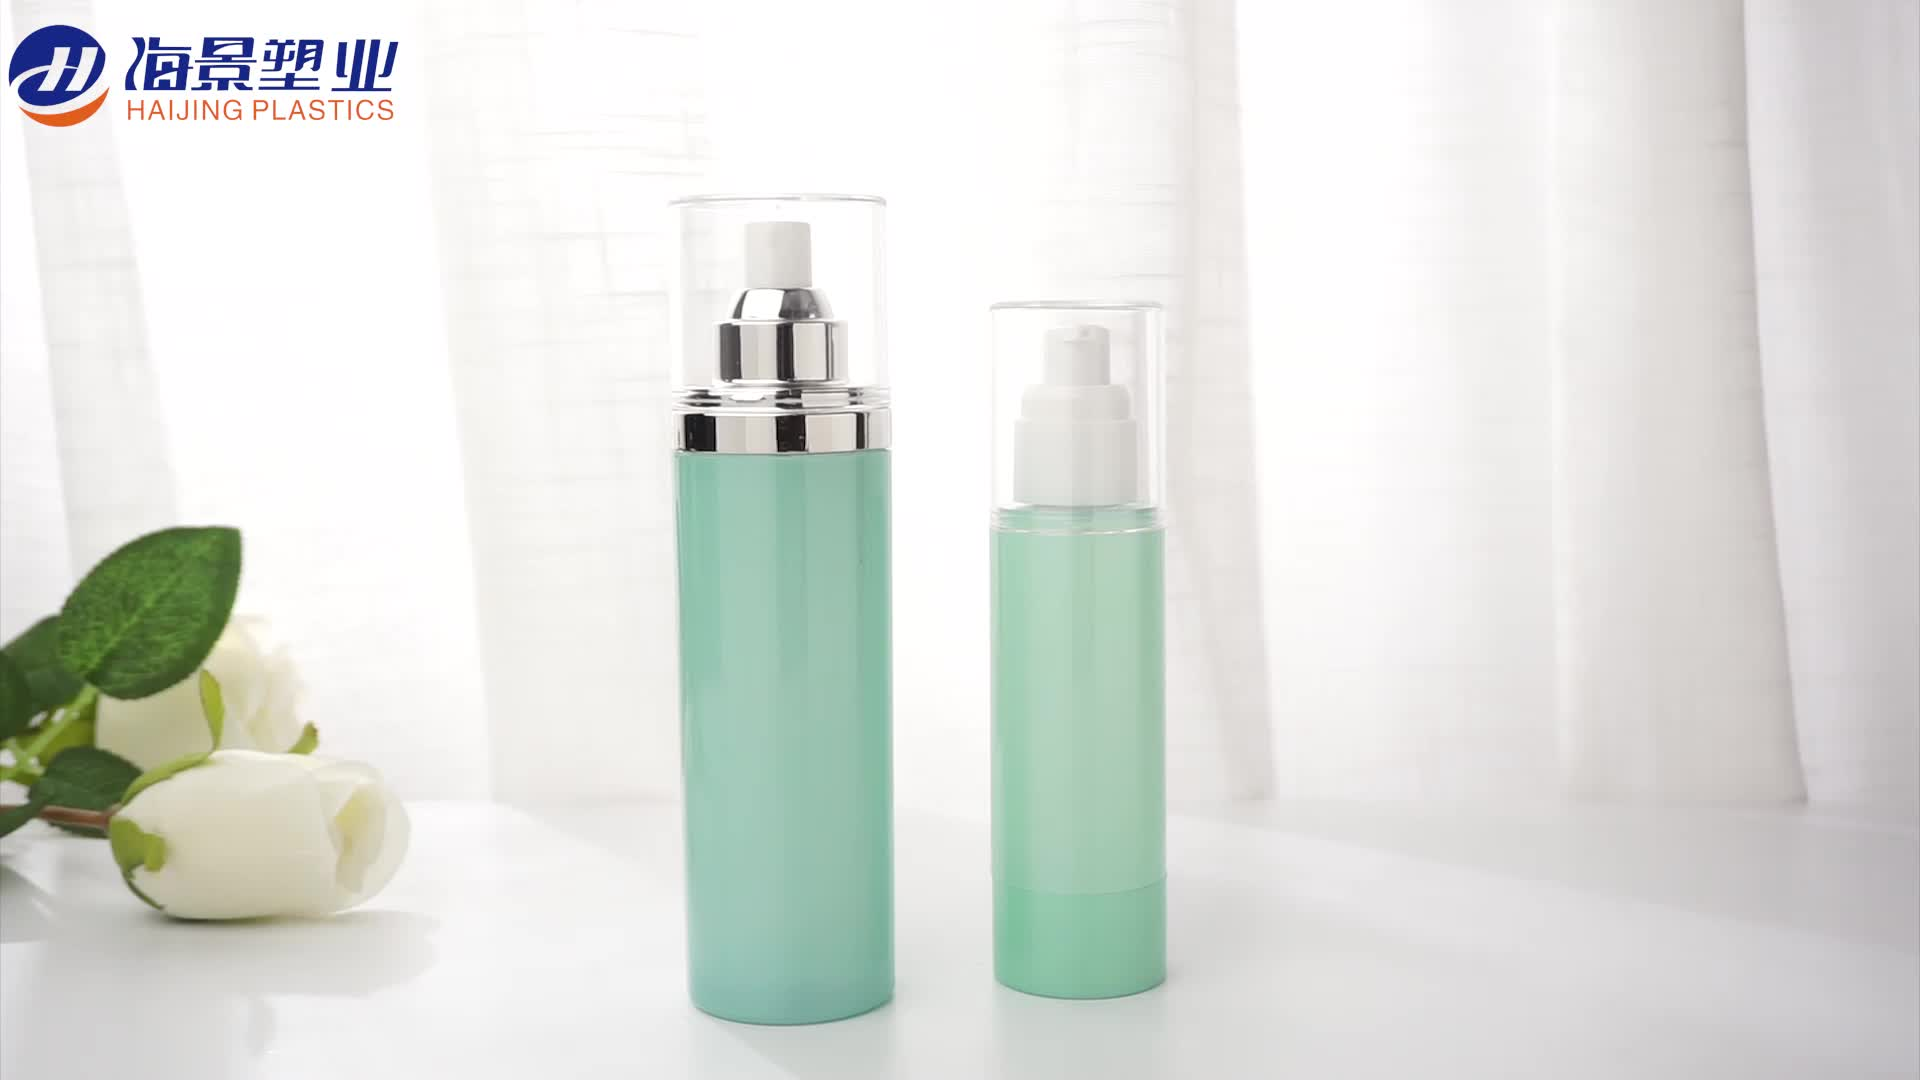 New design empty clear plastic AS 150ml cosmetic spray pump bottle for lotion